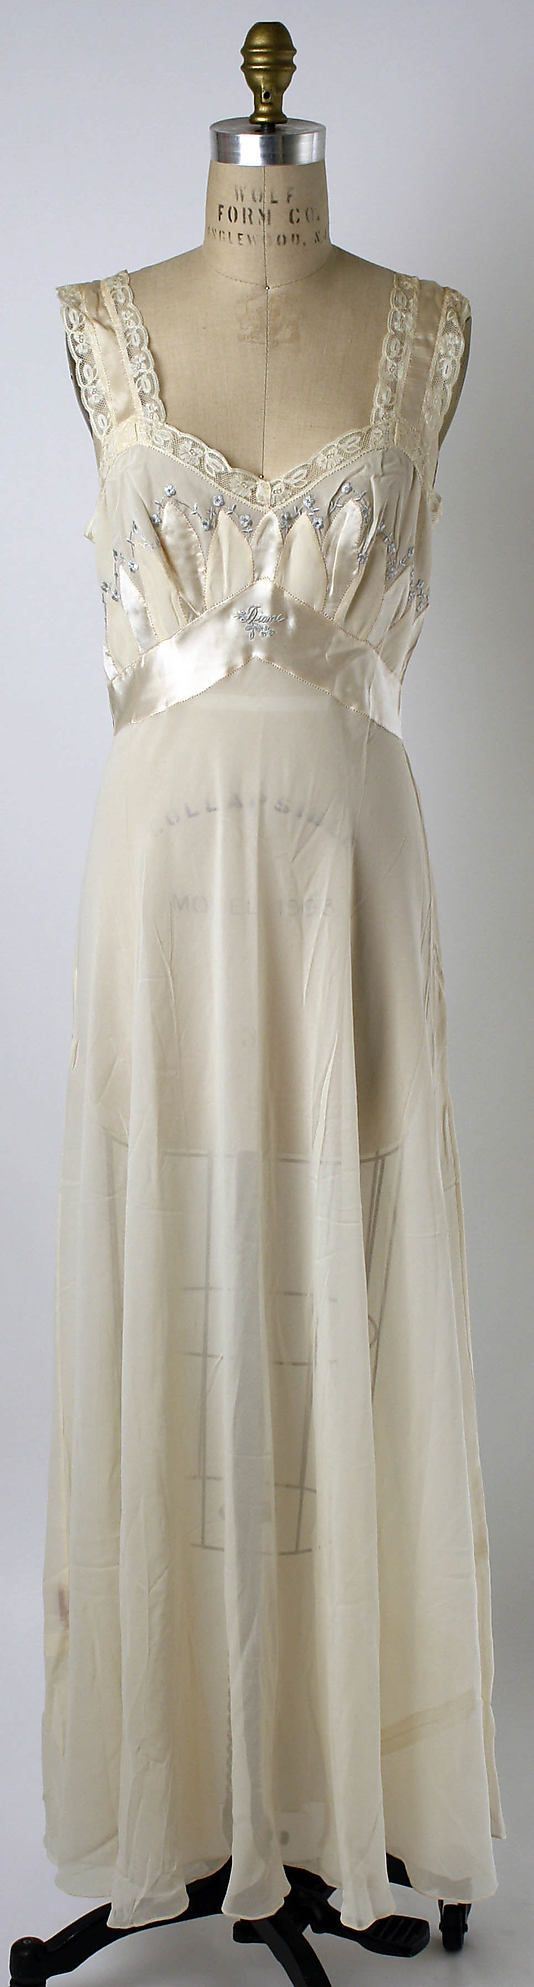 Met Museum of Art  Nightgown  Date:    1952  Culture:      American  Medium:      silk  Dimensions:      Length at CB: 48 in. (121.9 cm)  Credit Line:      Gift of Diane Kalman Hallenbeck, 1989  Accession Number:      1989.38.2